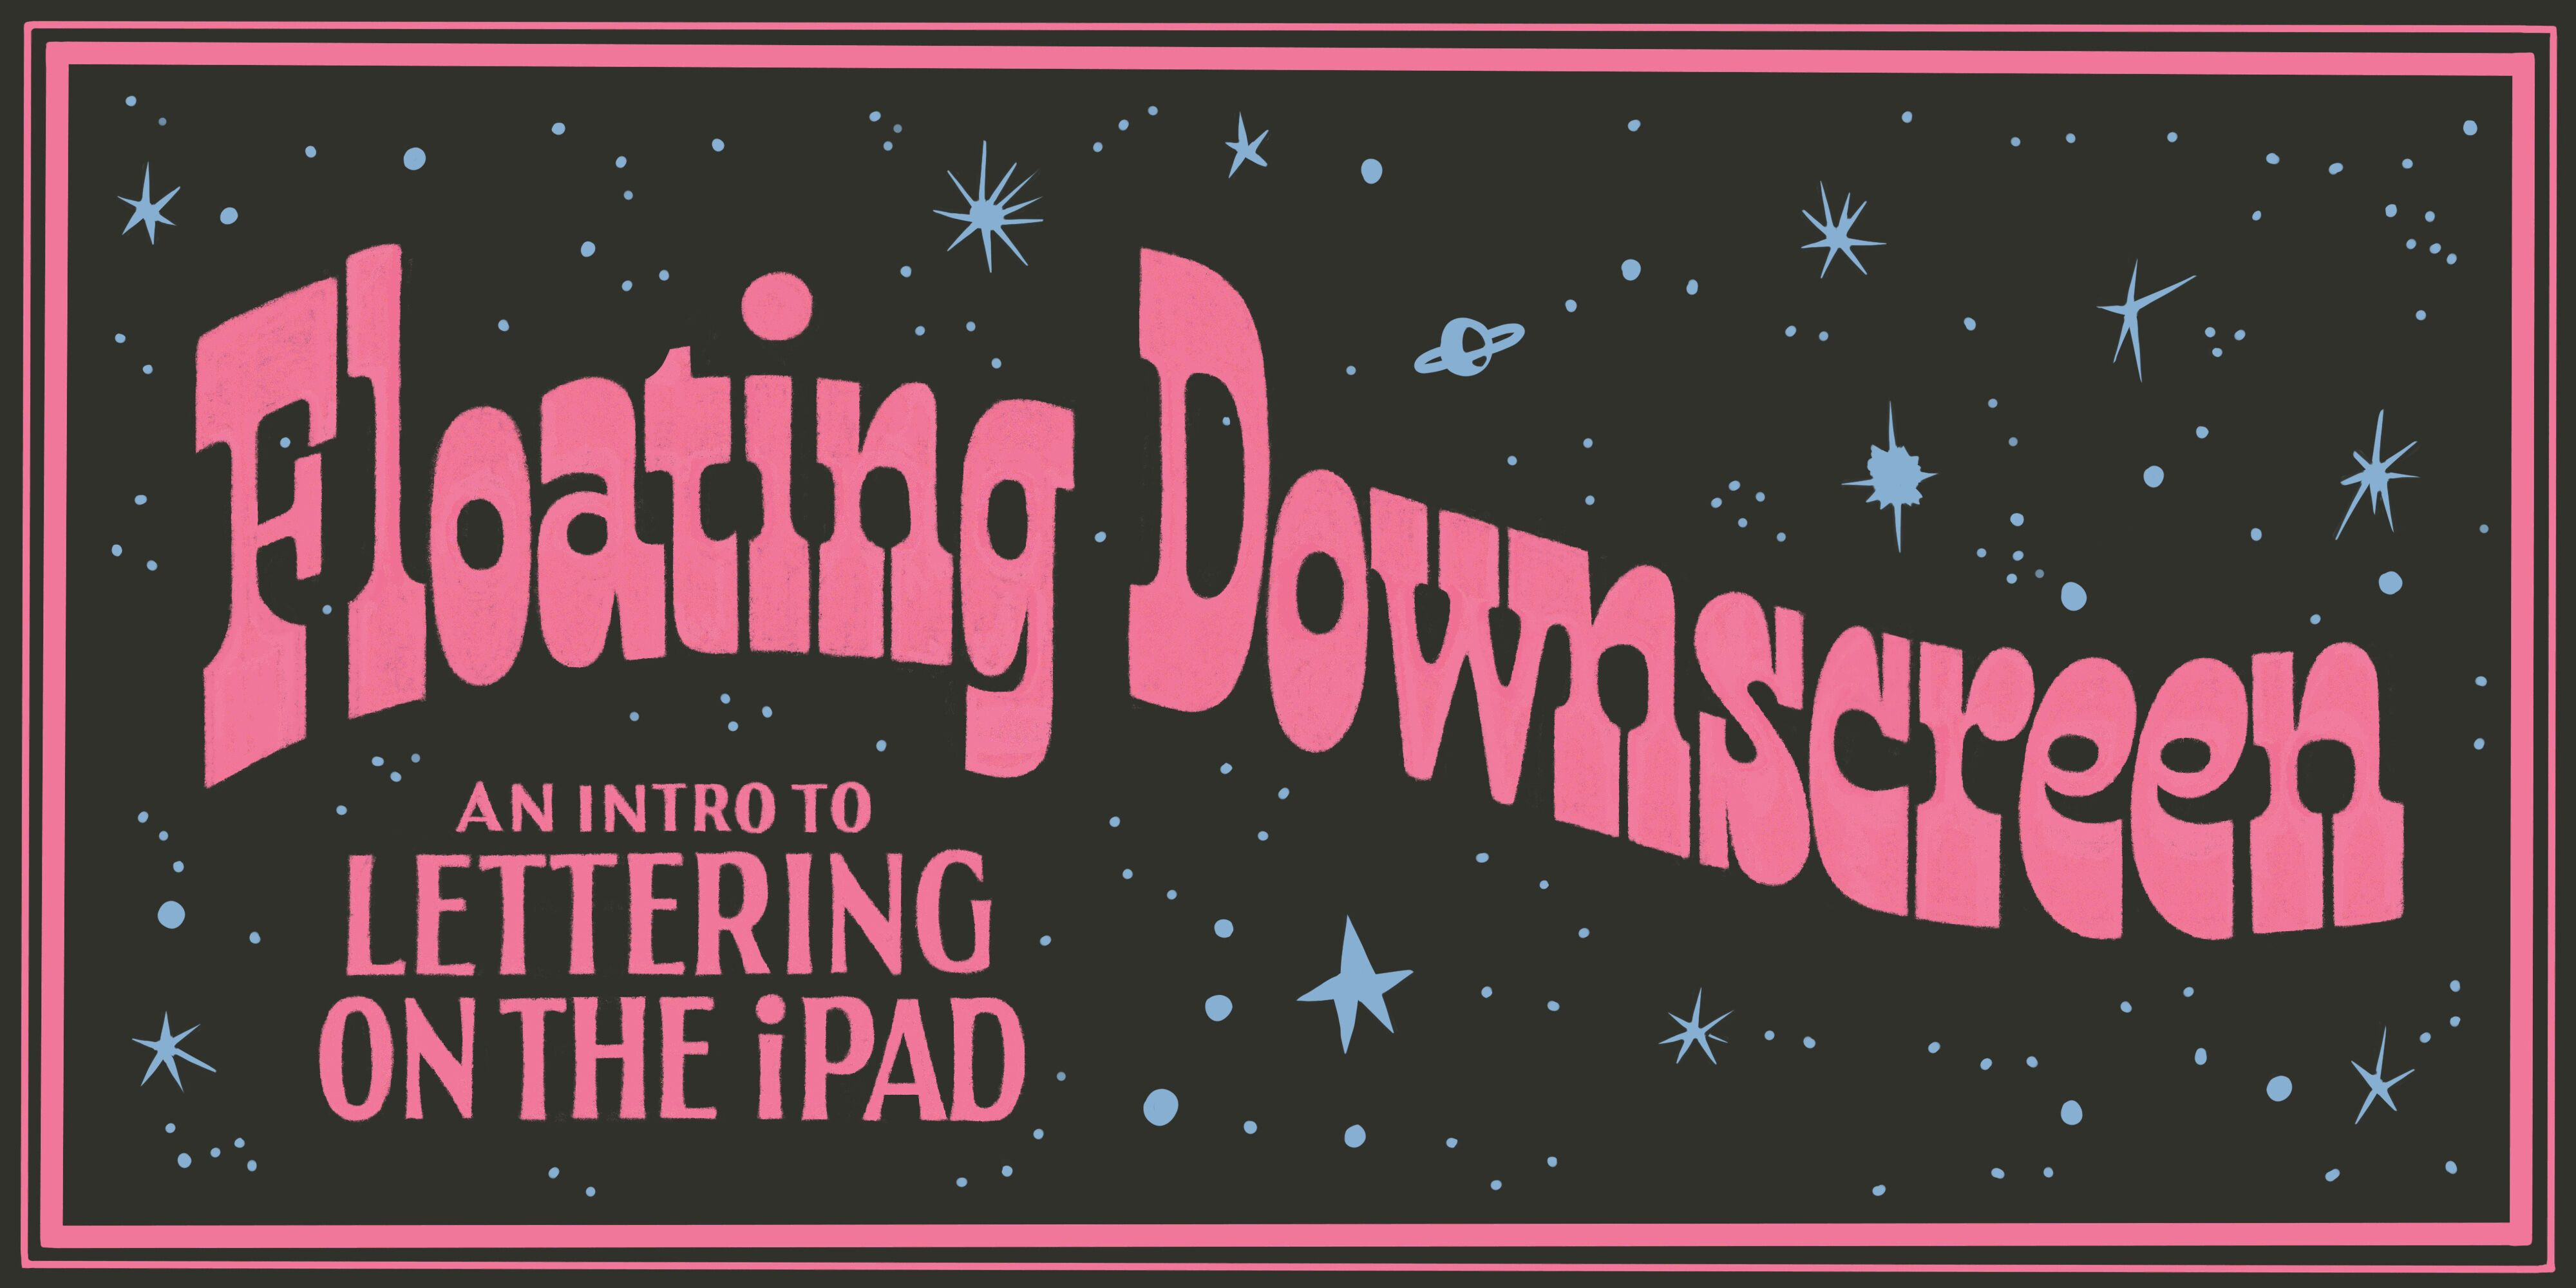 Floating Downscreen: An Intro to Lettering on the iPad